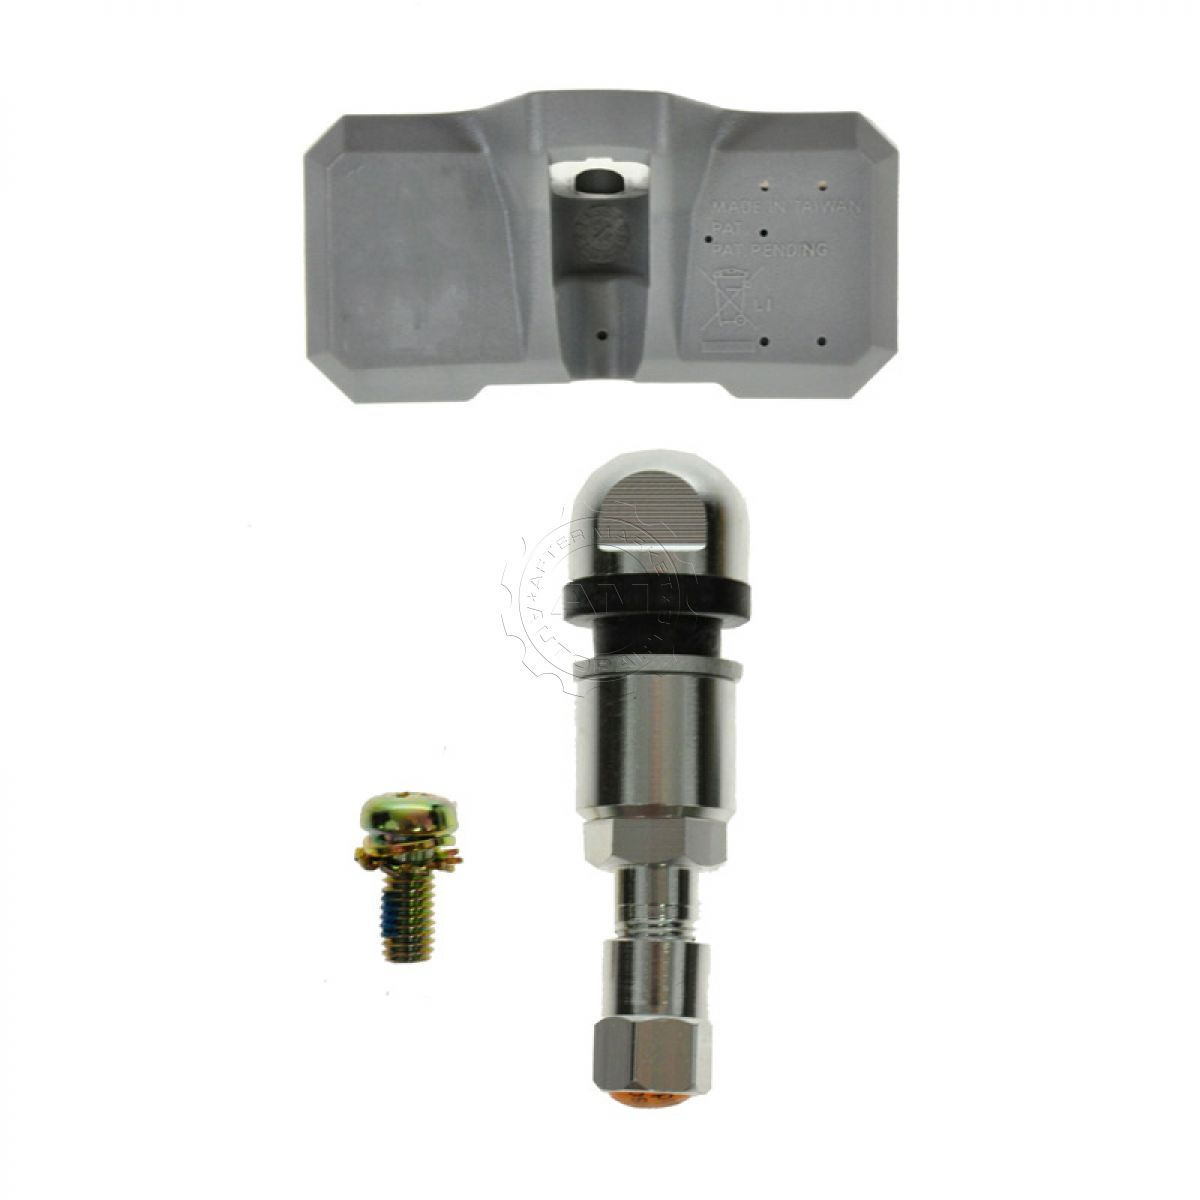 Tire Pressure Monitor Sensor Tpms Assembly For 06 Toyota